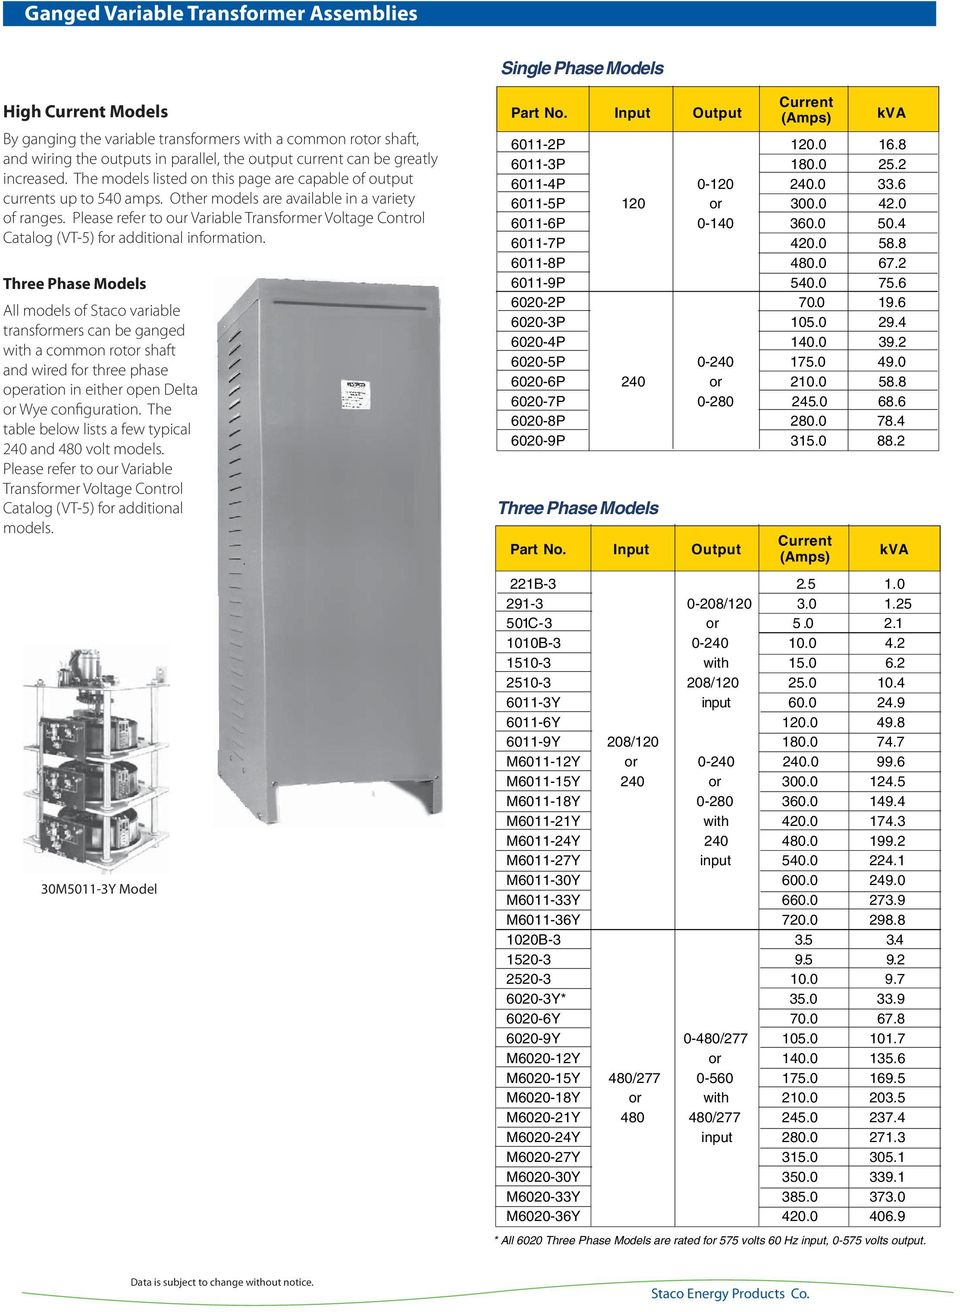 Please refer to our Variable Transformer Voltage Control Catalog (VT-5) for additional information.